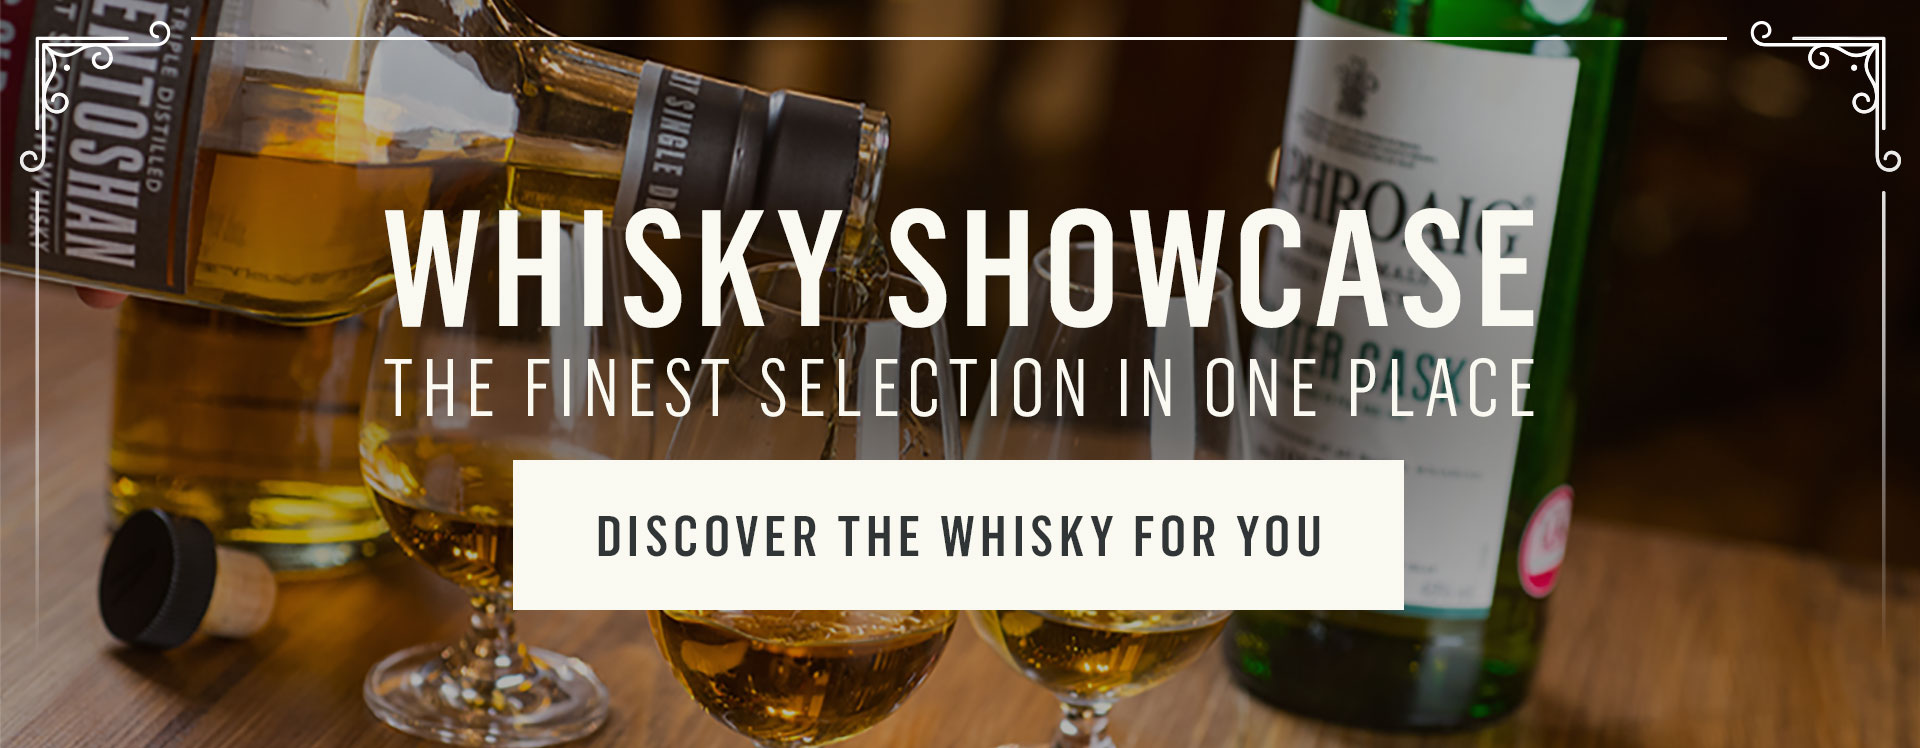 Whisky Showcase at Williamson's Tavern in London